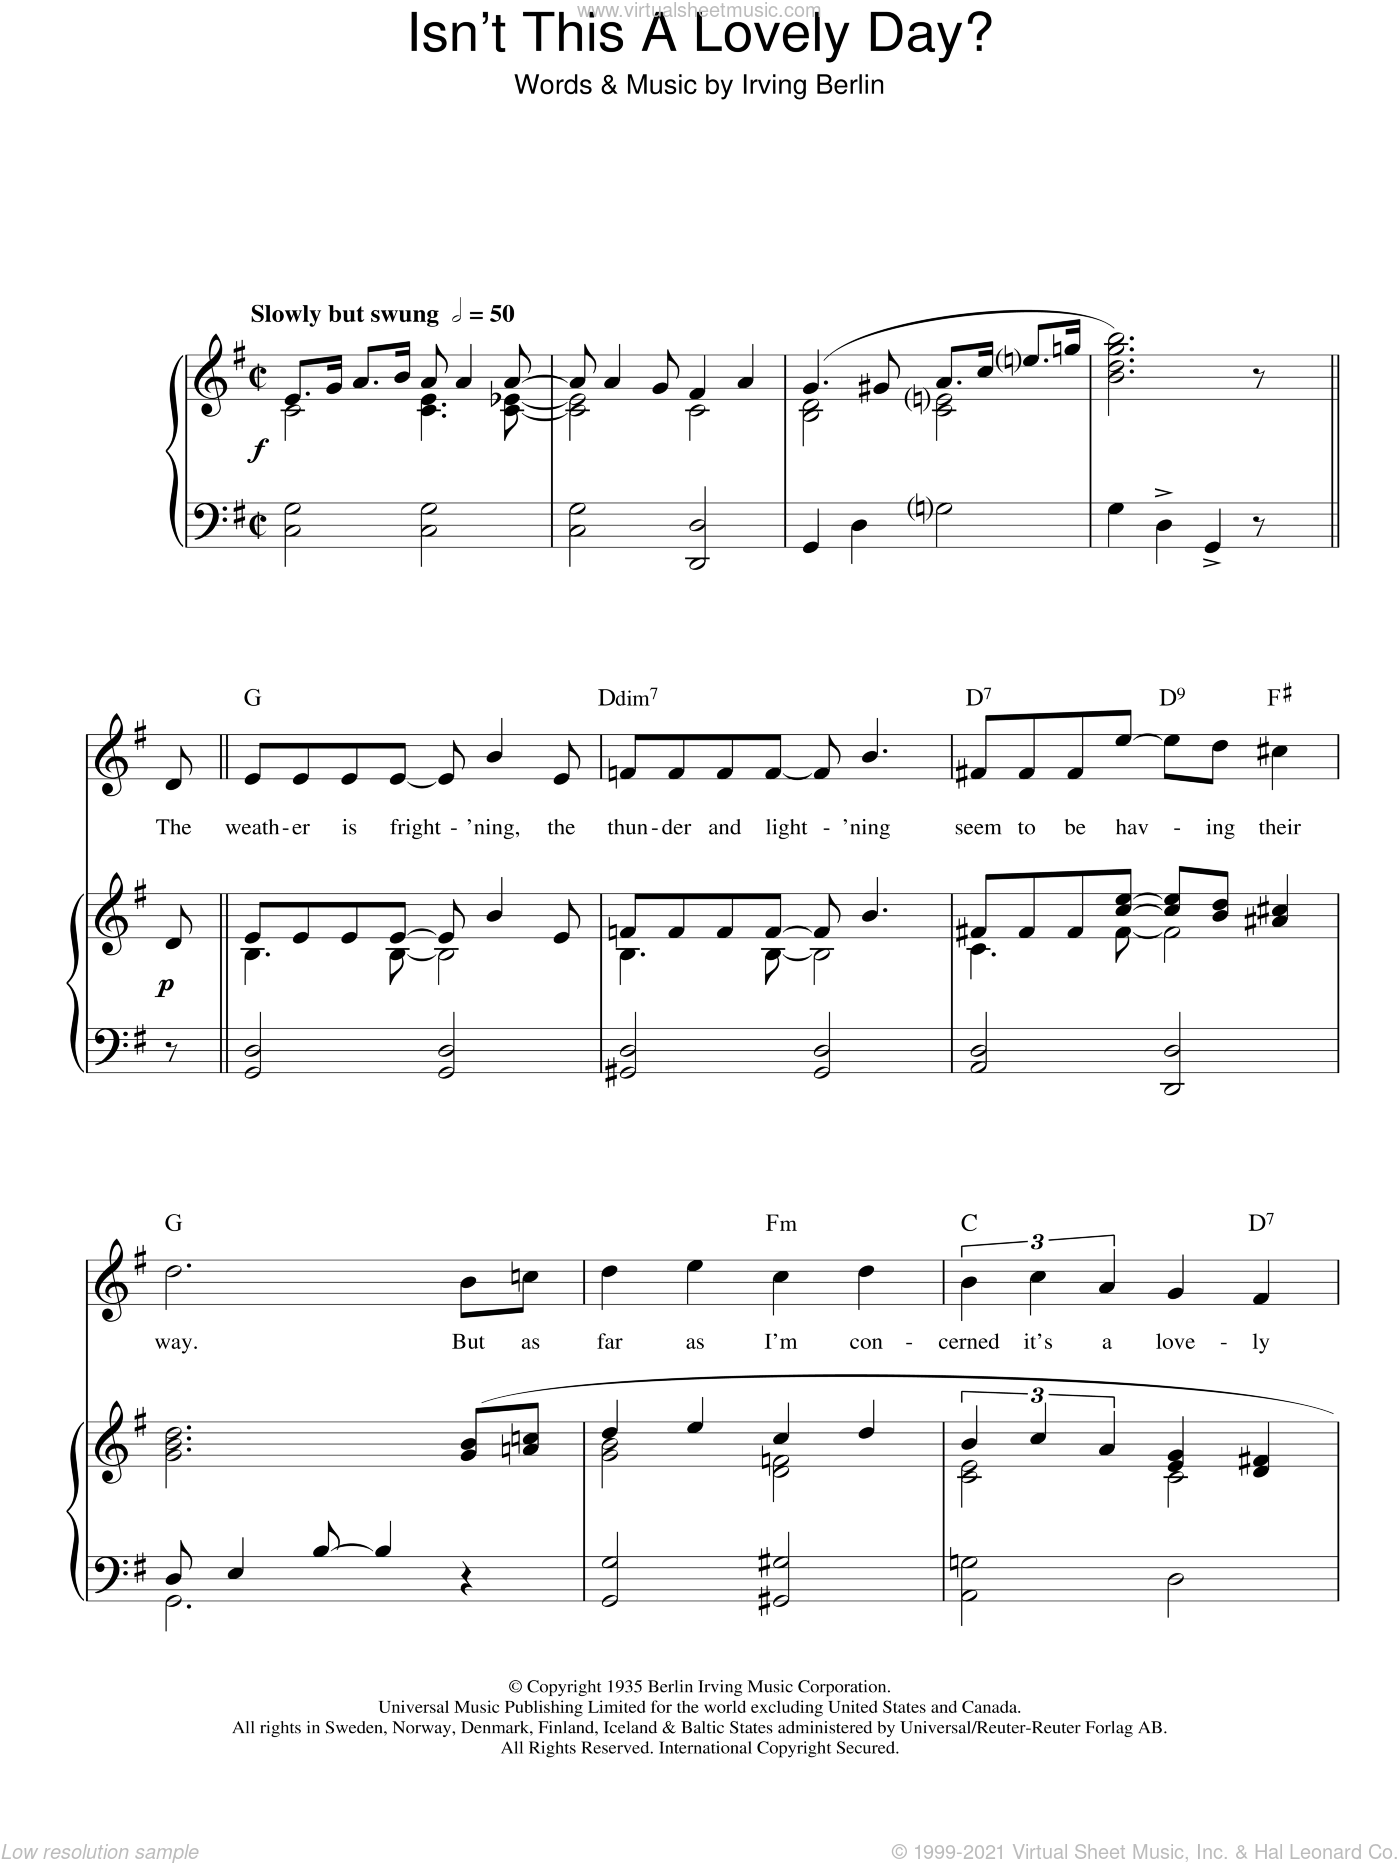 Isn't This A Lovely Day? sheet music for voice, piano or guitar by Irving Berlin